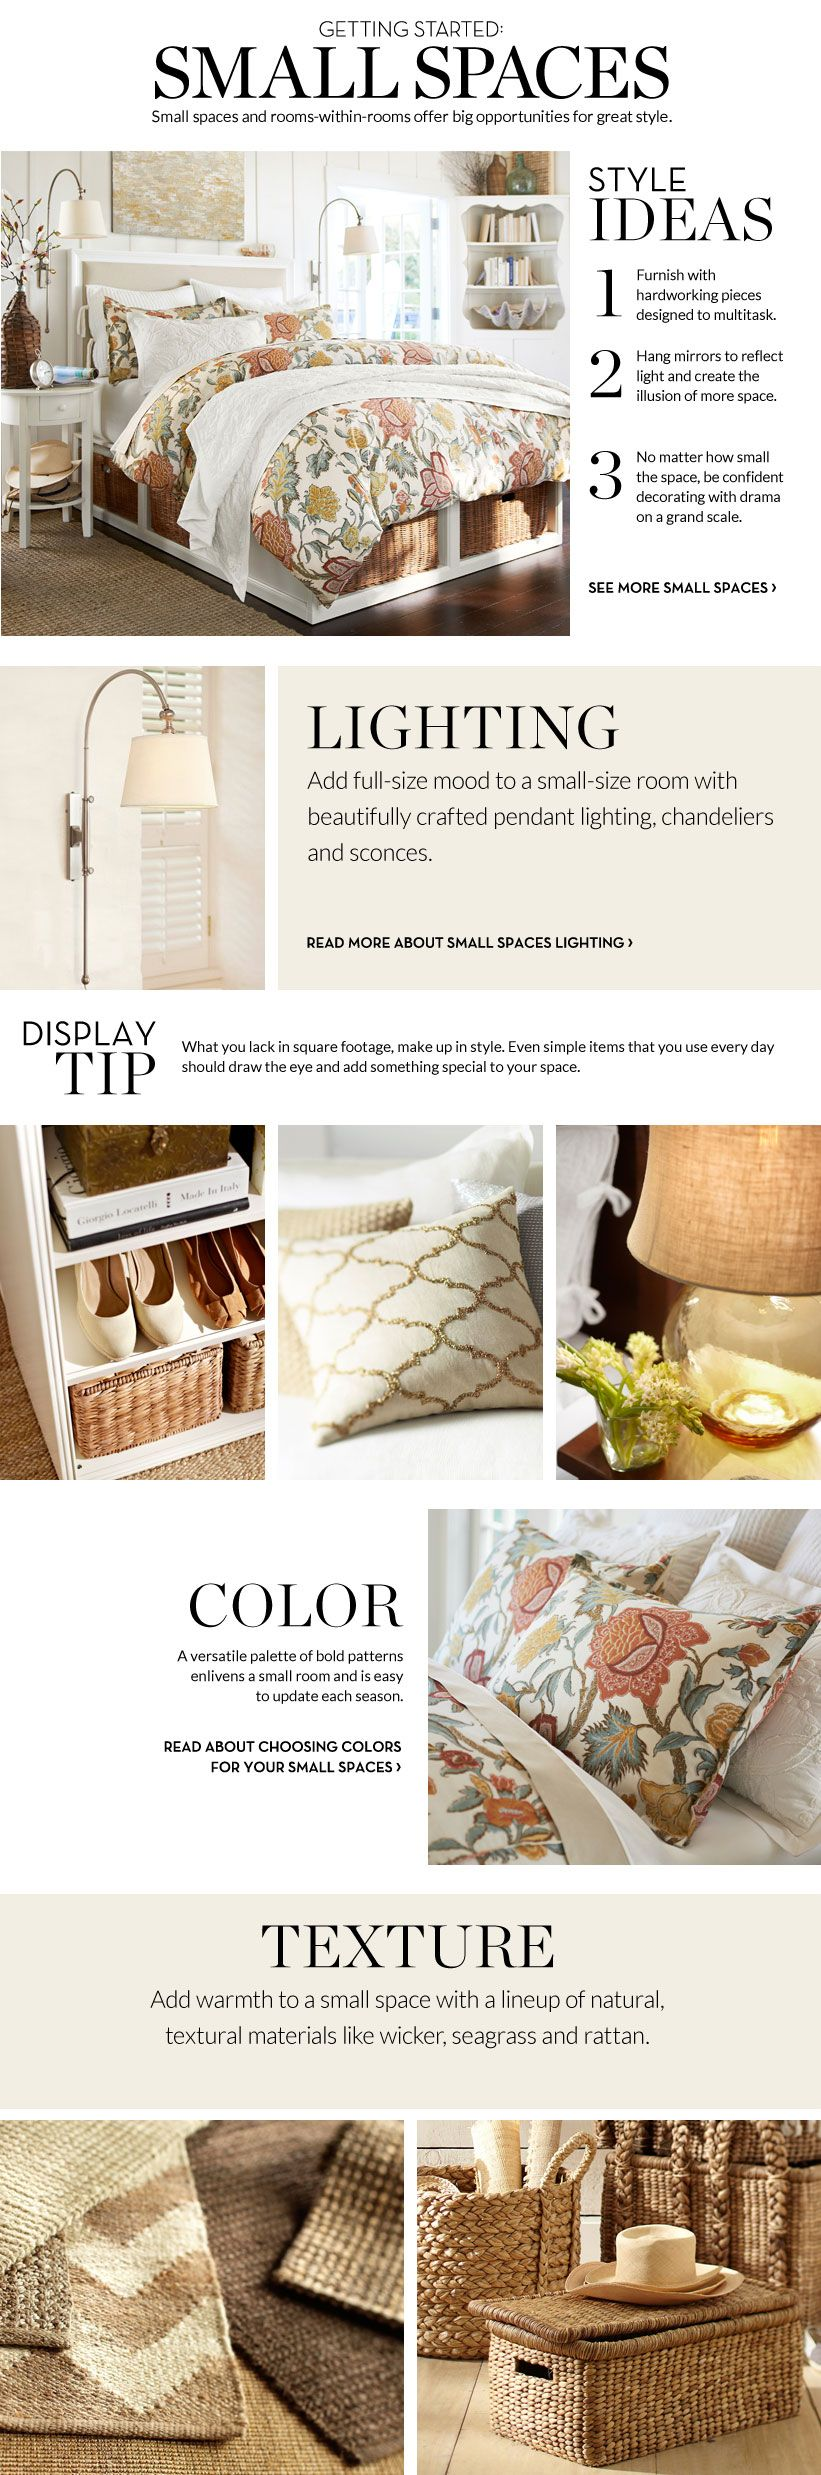 Small Spaces Inspiration U0026 How To Decorate Small Spaces | Pottery Barn